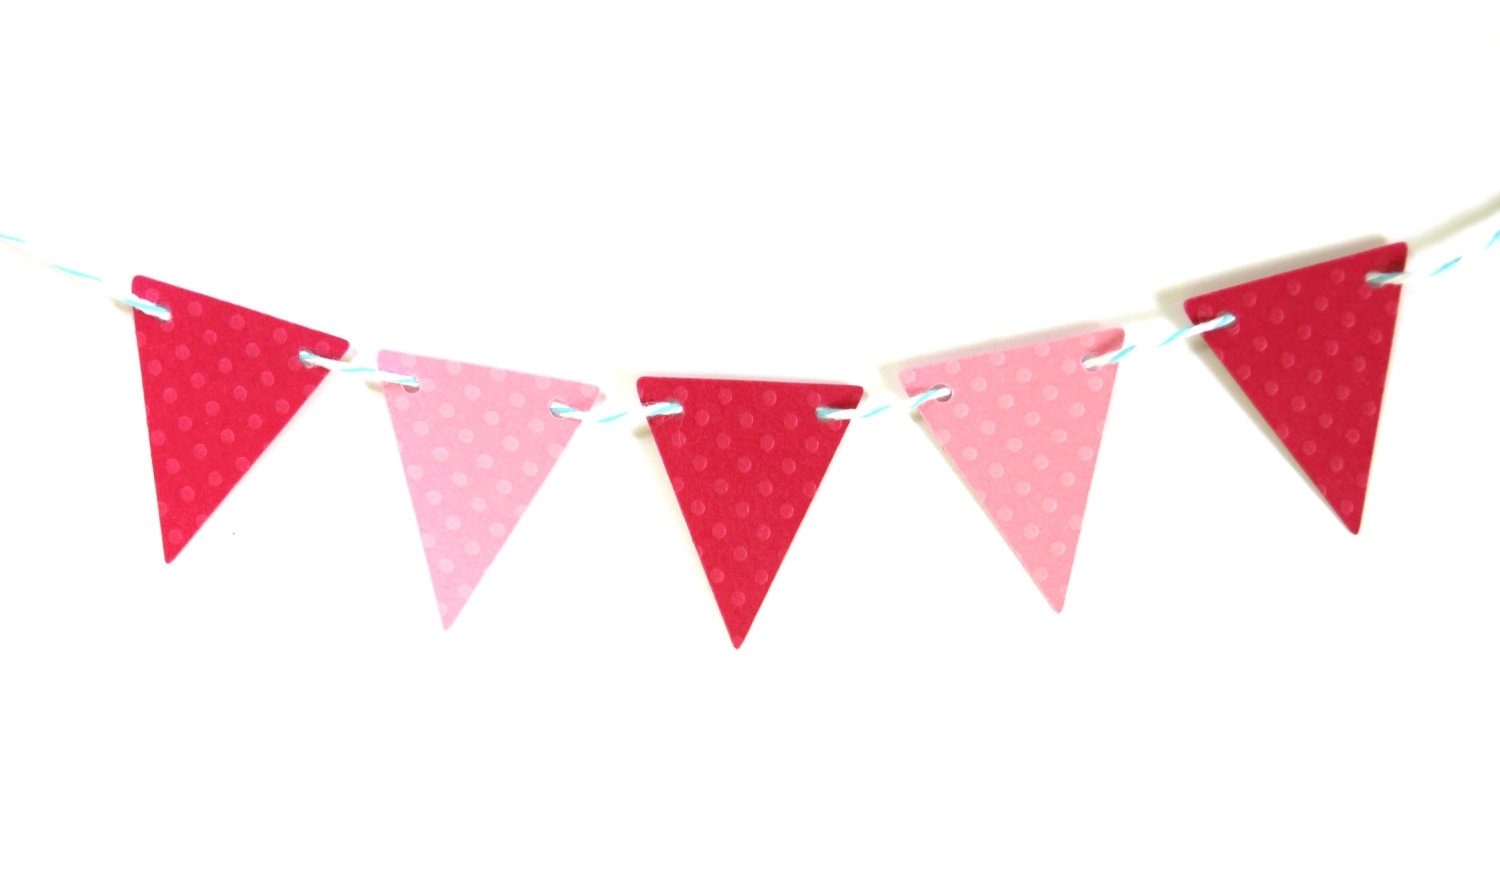 Pennant banner clipartbarn within. Triangular clipart kid graphic stock